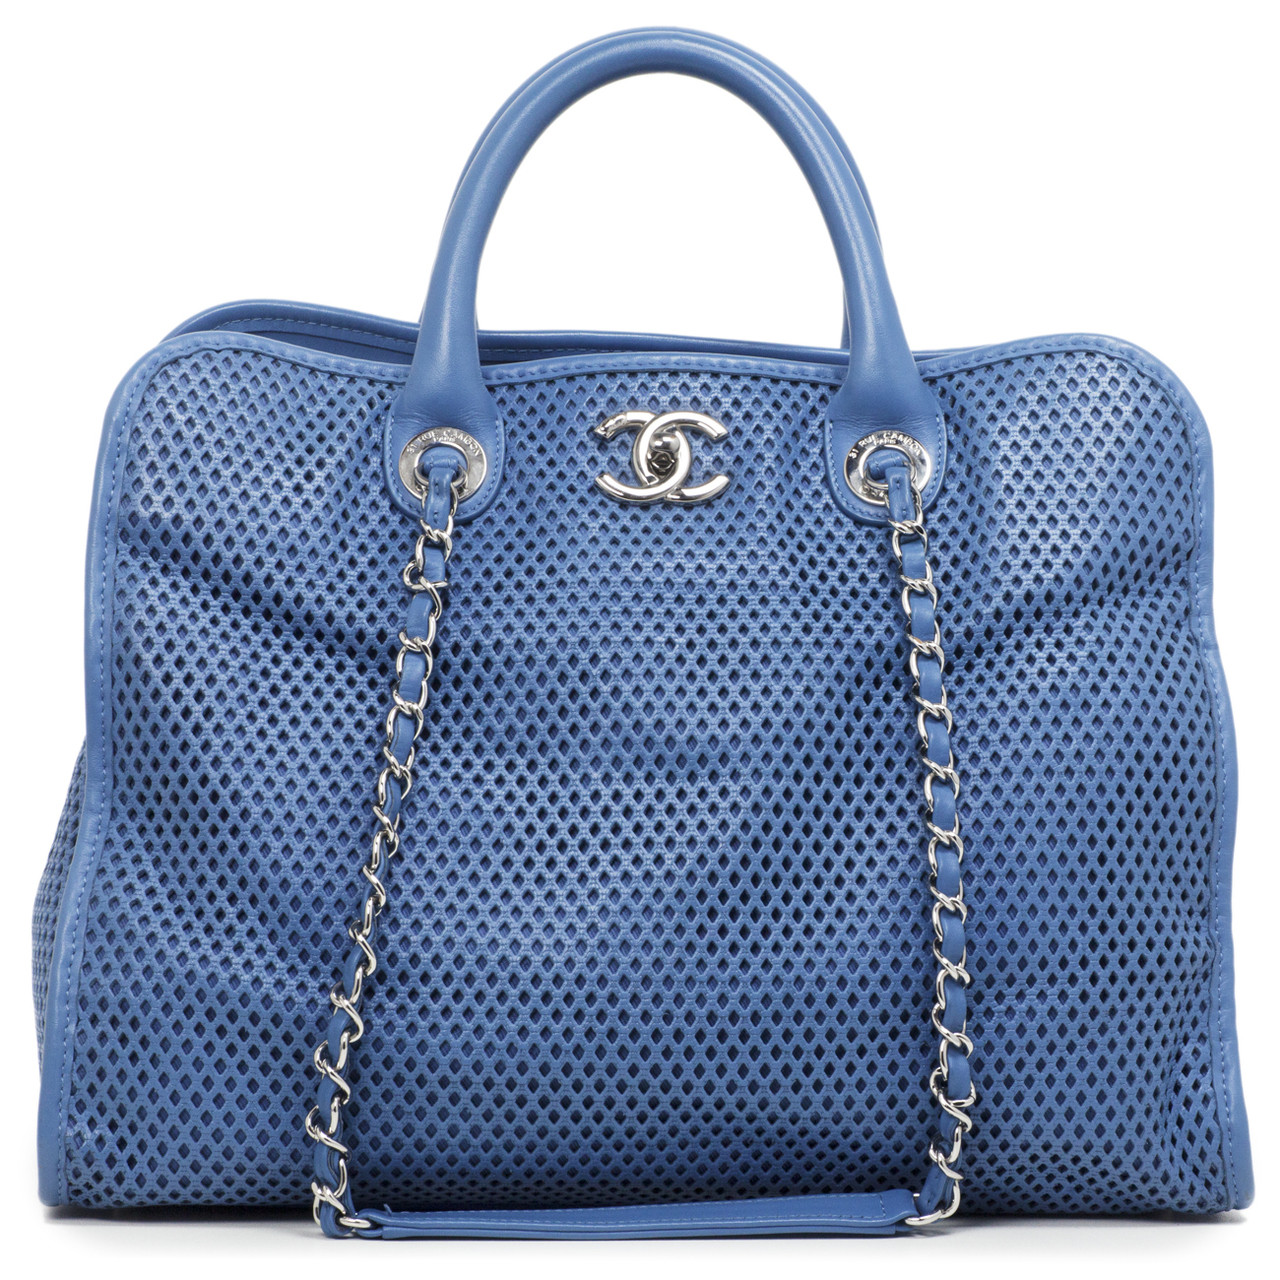 7349d143501375 Chanel Blue Perforated Calfskin Up in the Air Tote - modaselle